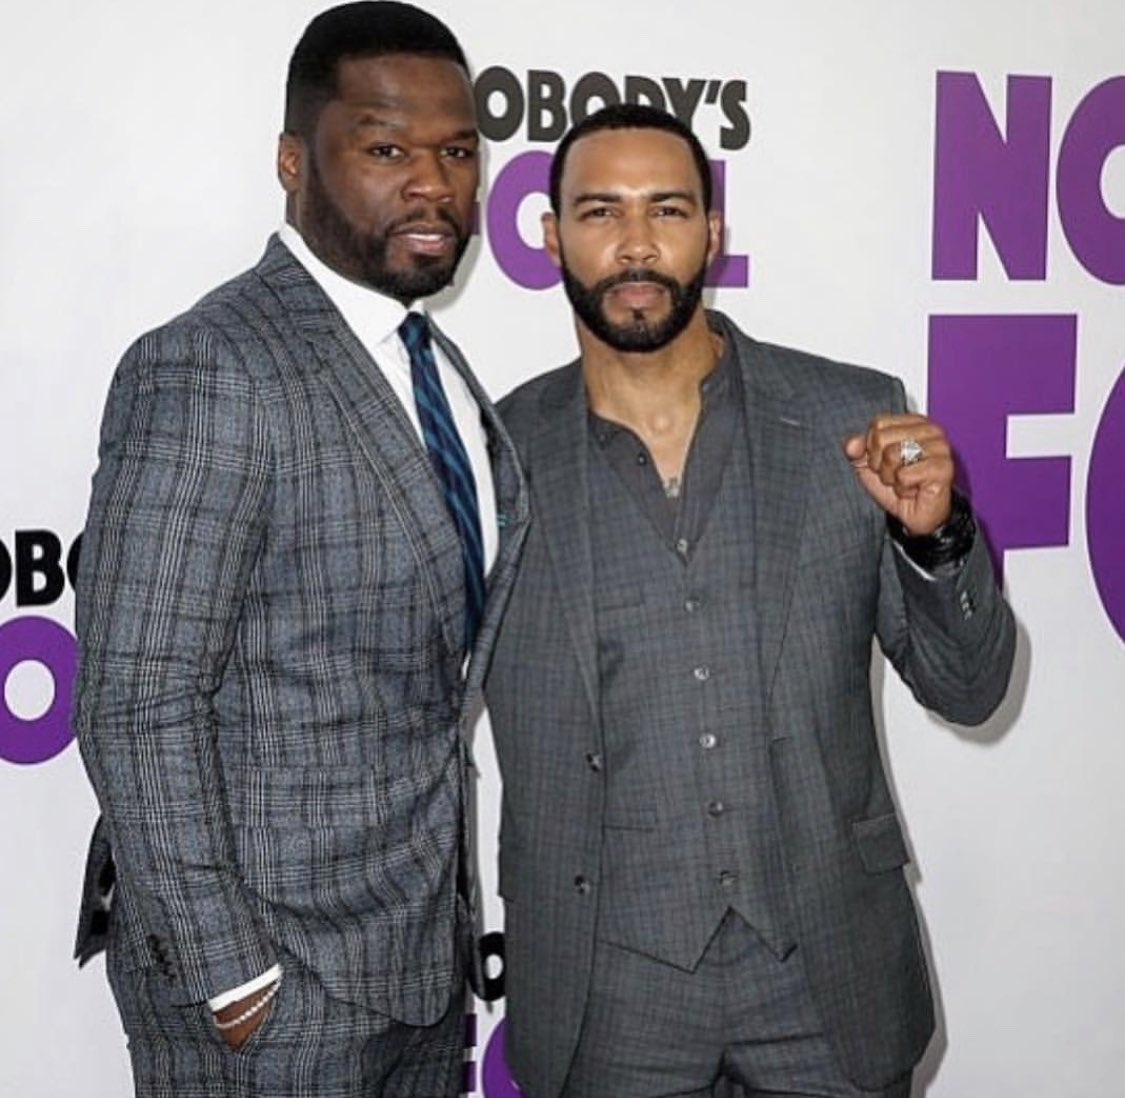 Nobody's Fool is a good film check it out Tiffany Haddish did her thing in it really funny. #bellator #lecheminduroi https://t.co/pnHTgVwIHM